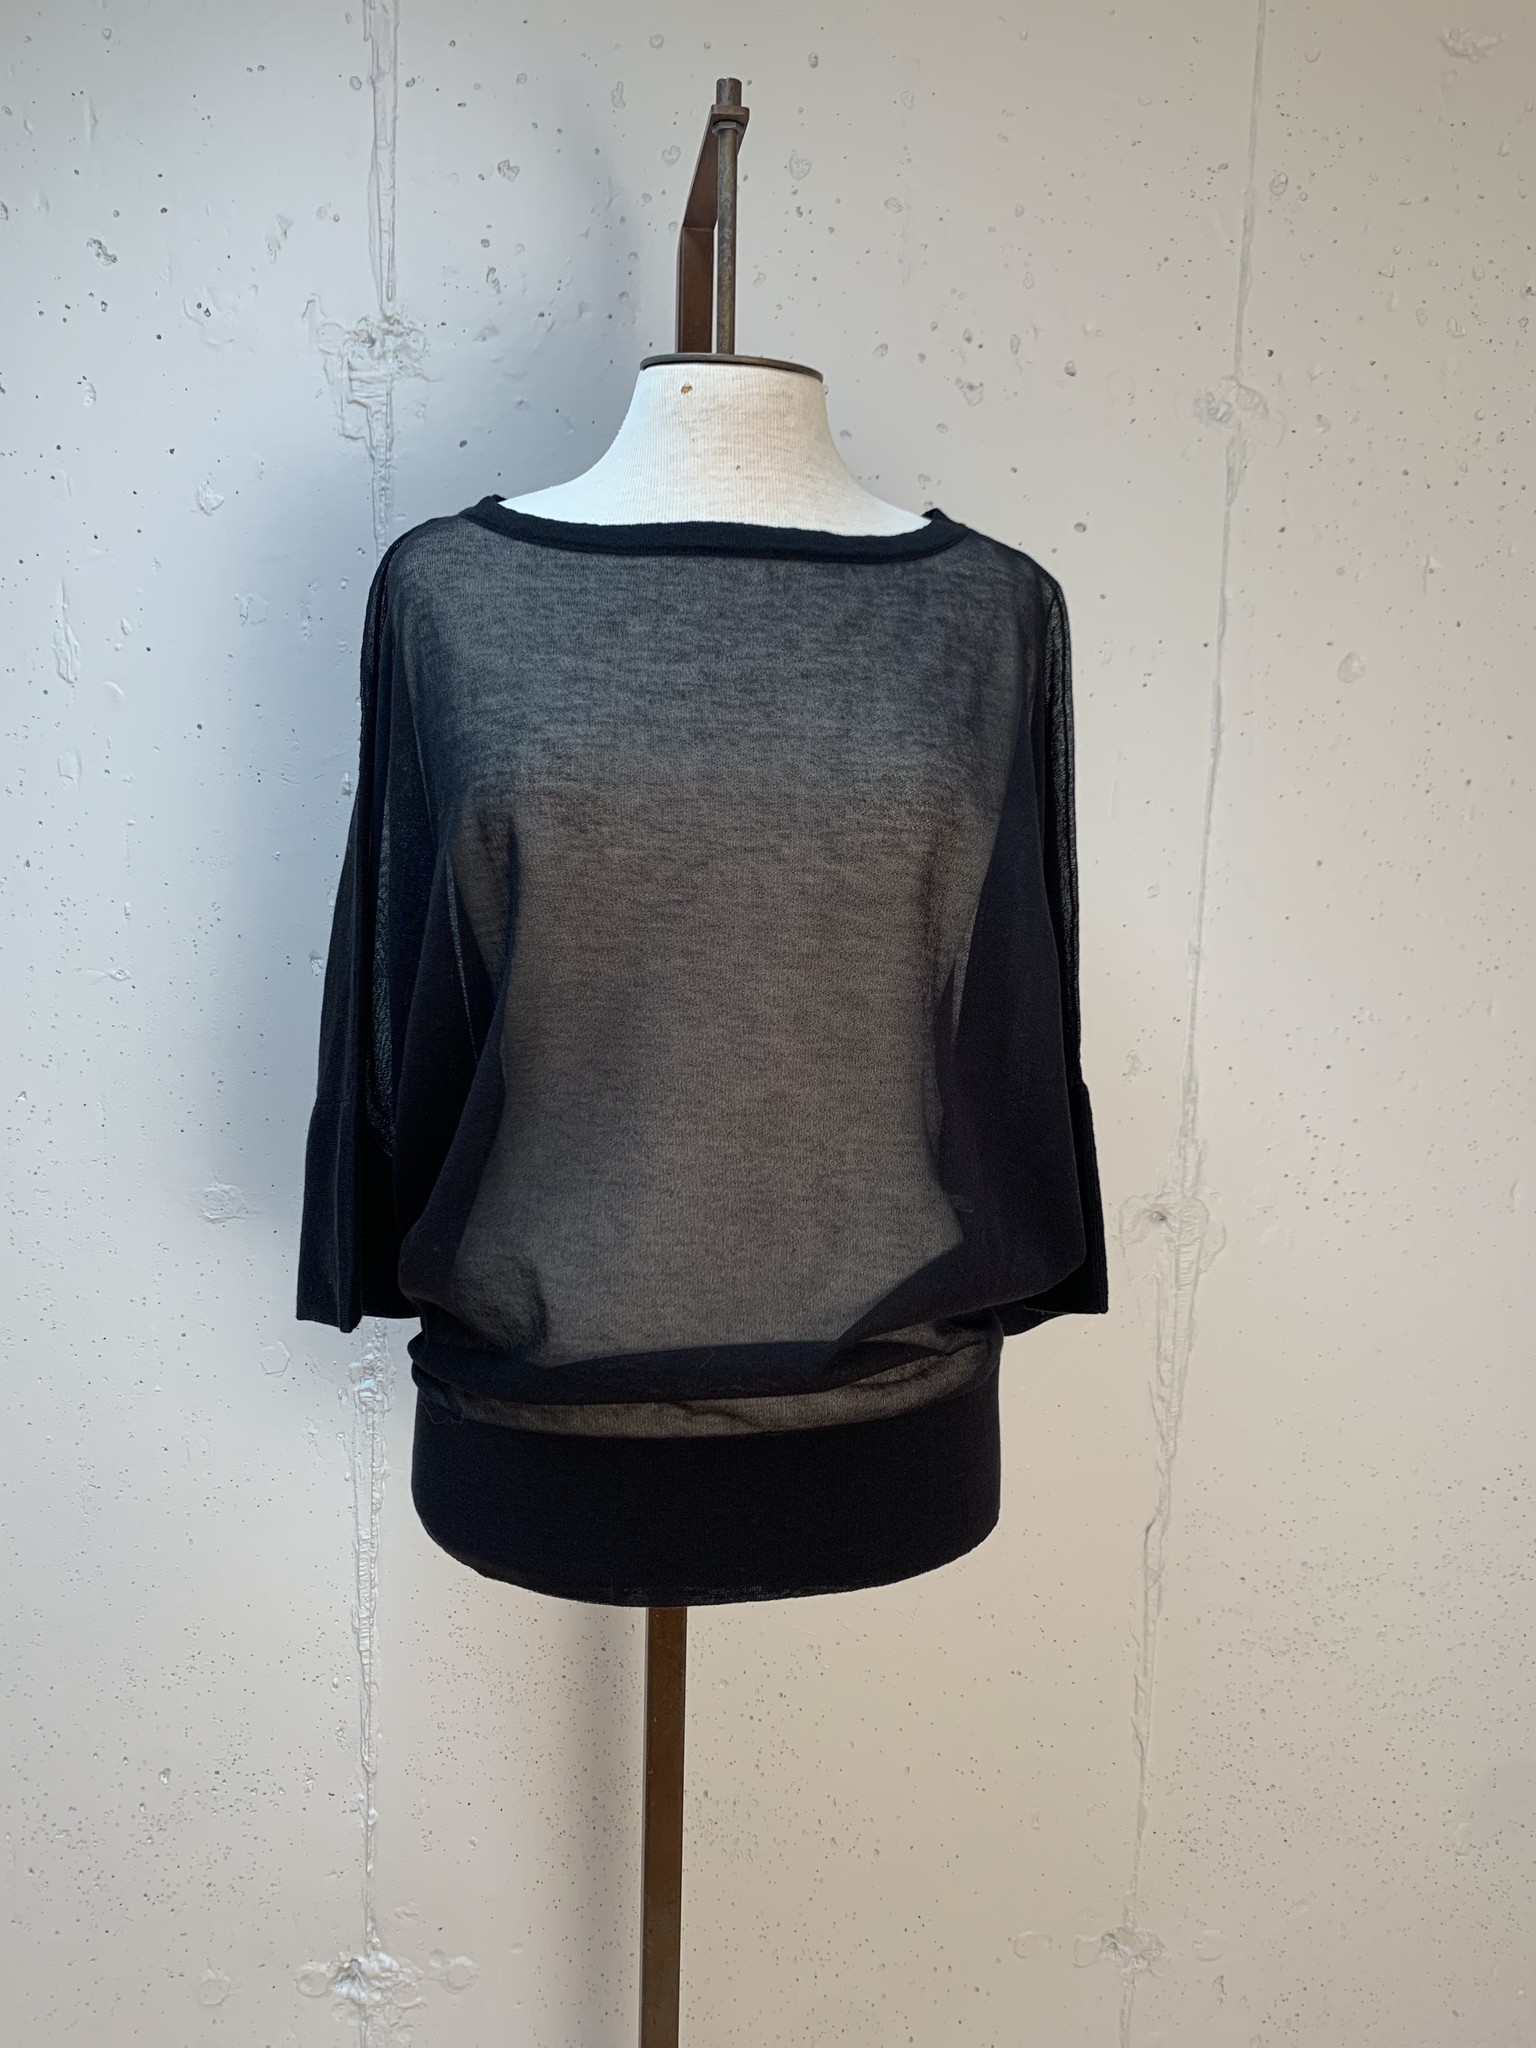 Liviana Conti Sheer Knit Top